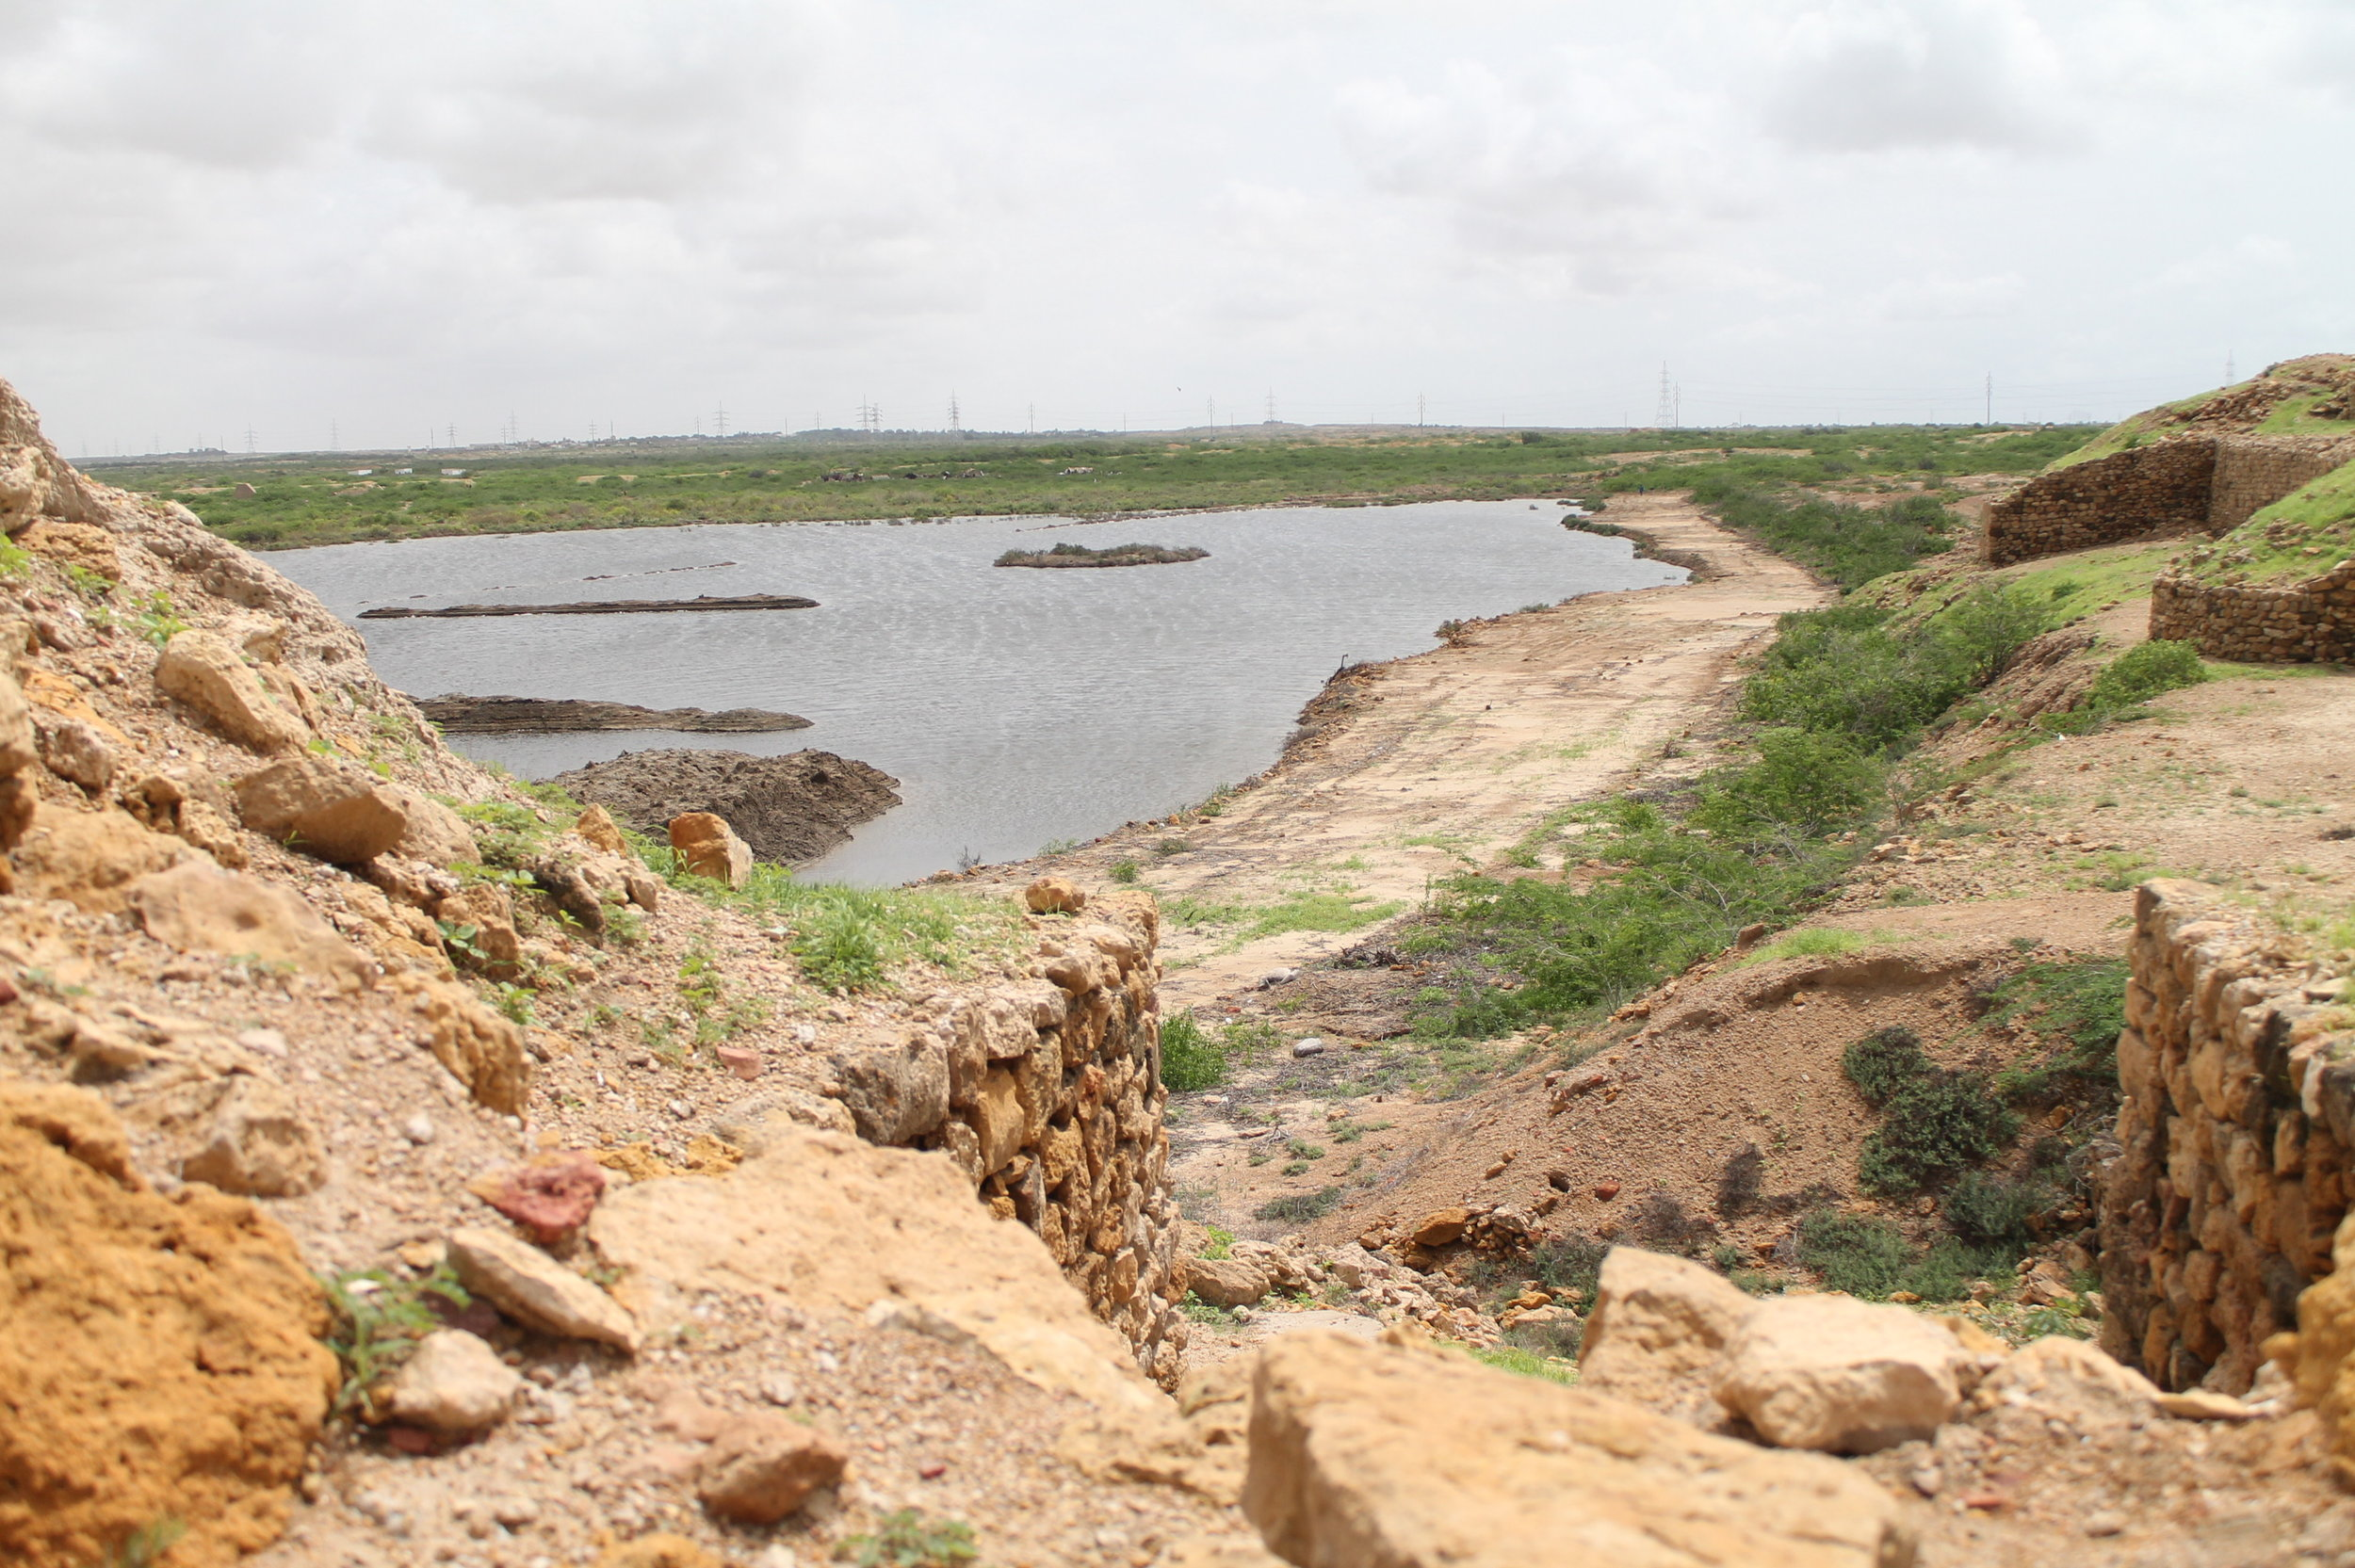 View of the River Indus (Sindh River), where Sasui floated down in a wooden box and ended up in Bhambhore